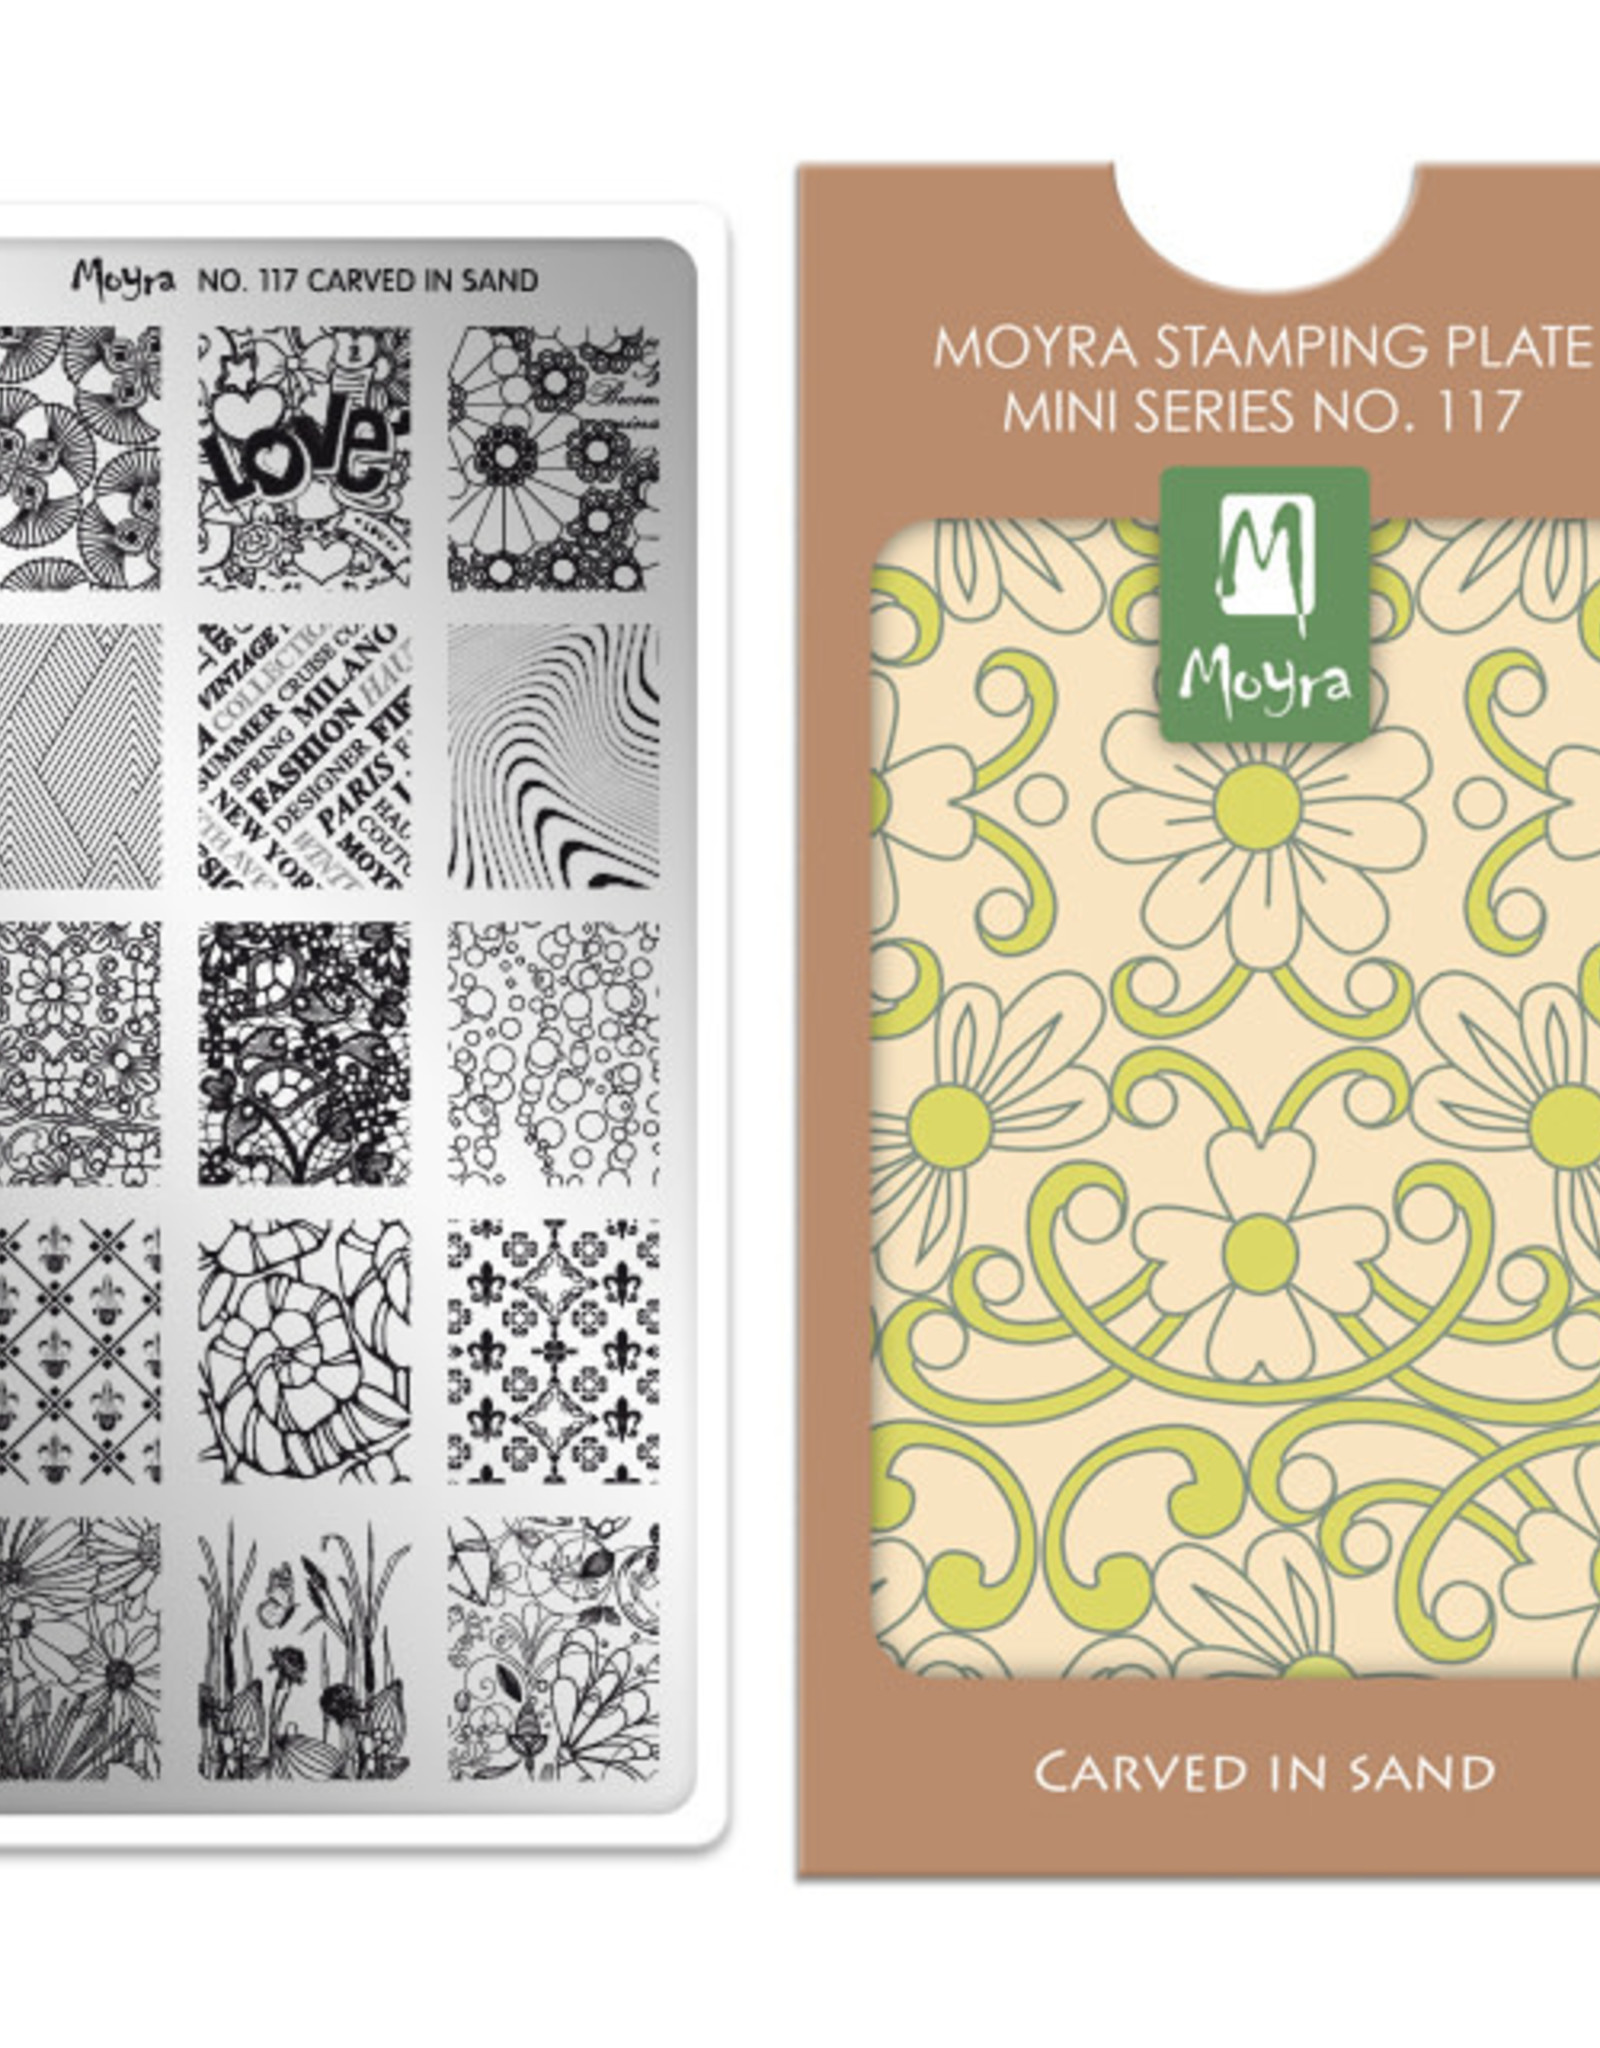 Moyra Moyra Mini Stamping plate 117 Carved in sand